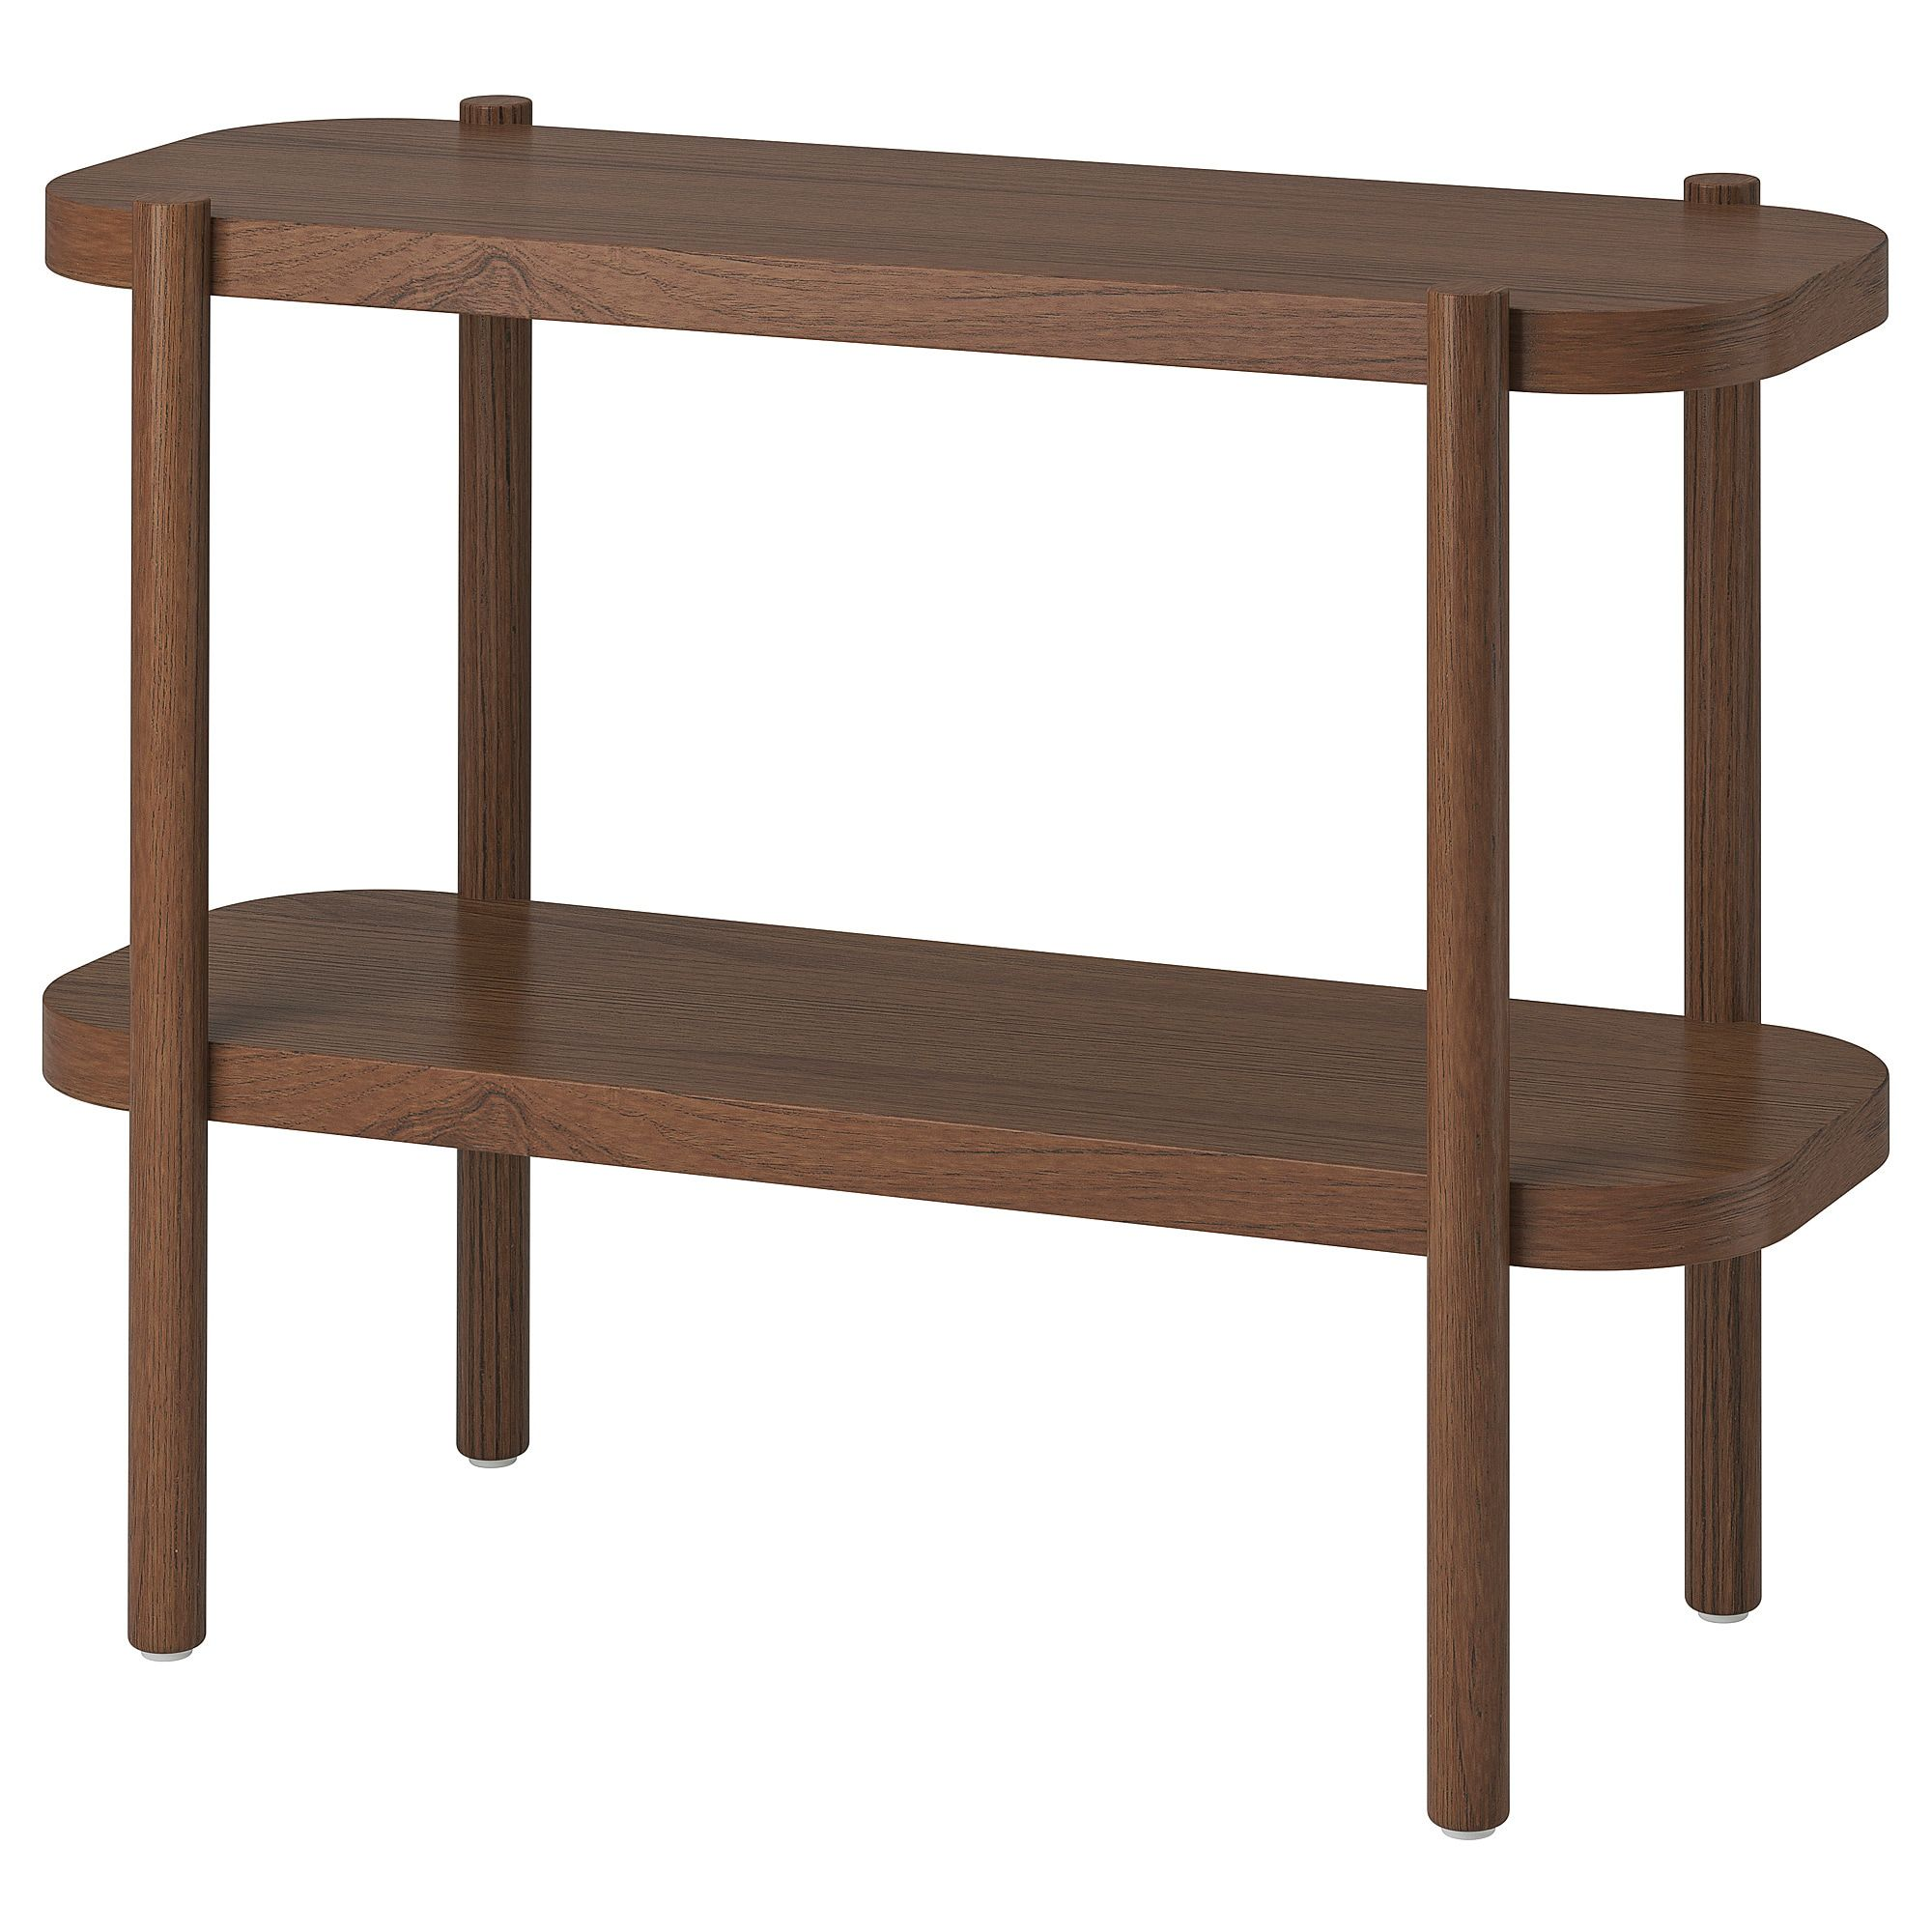 Listerby Console Table Brown 92x38x71 Cm Ikea Console Table Ikea Console Table Warm Home Decor [ 2000 x 2000 Pixel ]